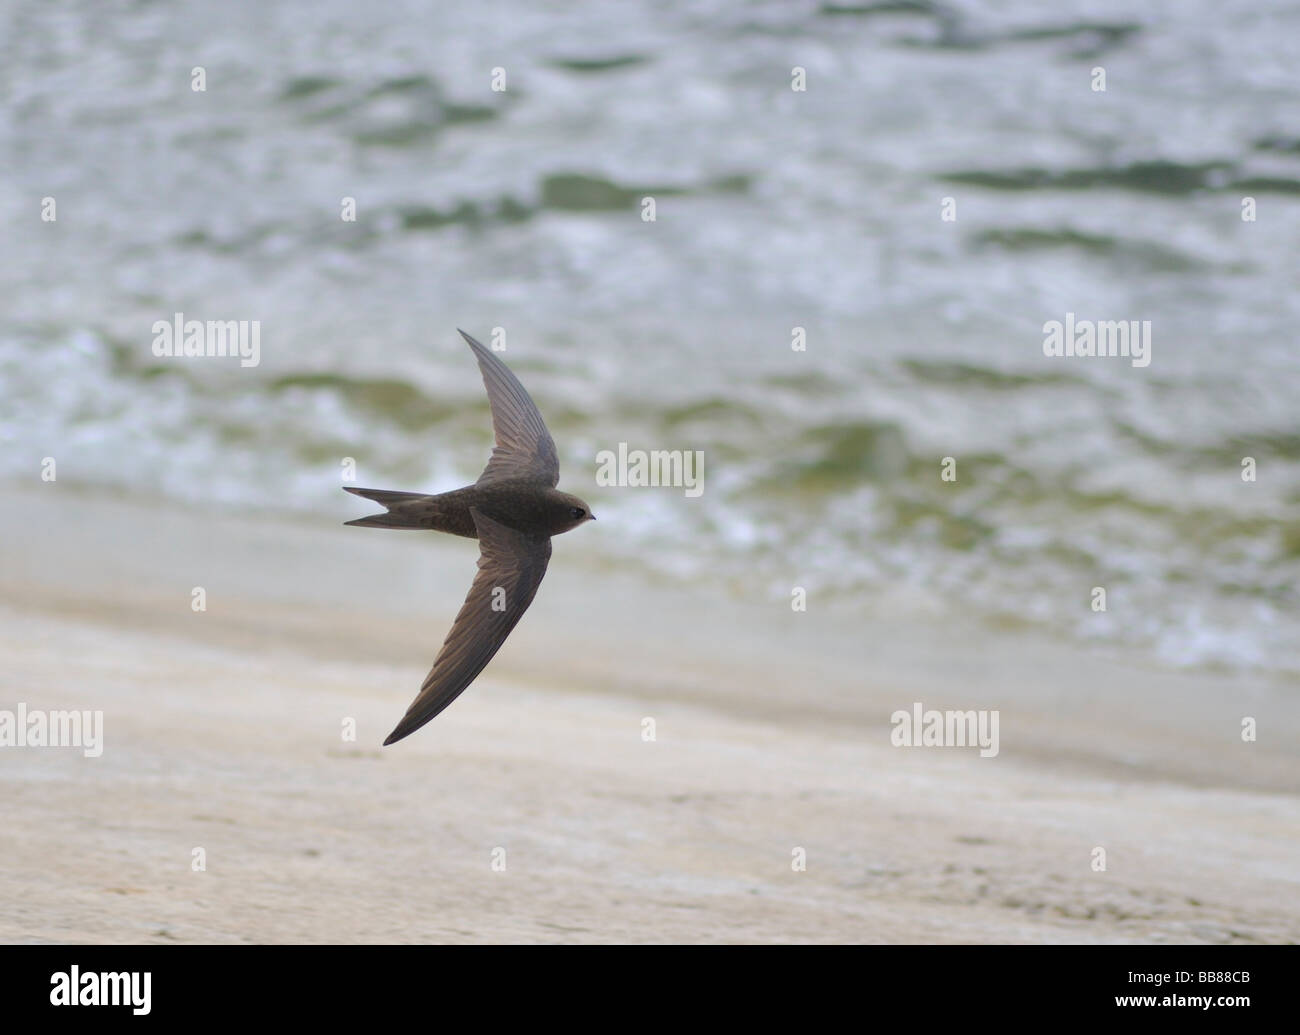 Common Swift. Apus apus IN FLIGHT OVER WATER. French: Martinet noir German: Mauersegler Spanish: Vencejo común - Stock Image